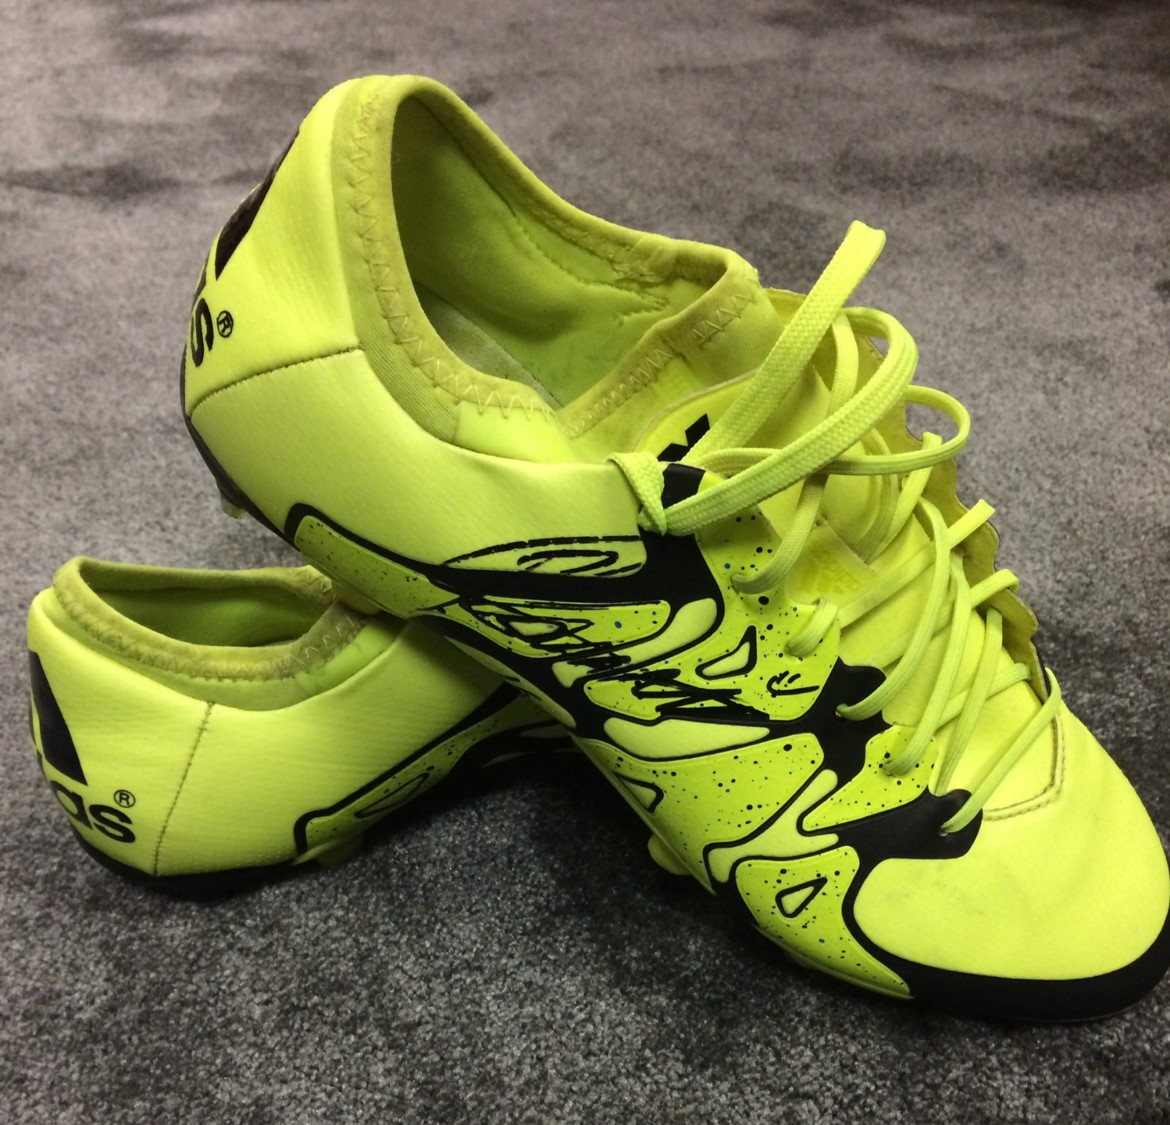 OWN REECE BURKE'S BOOTS!!!